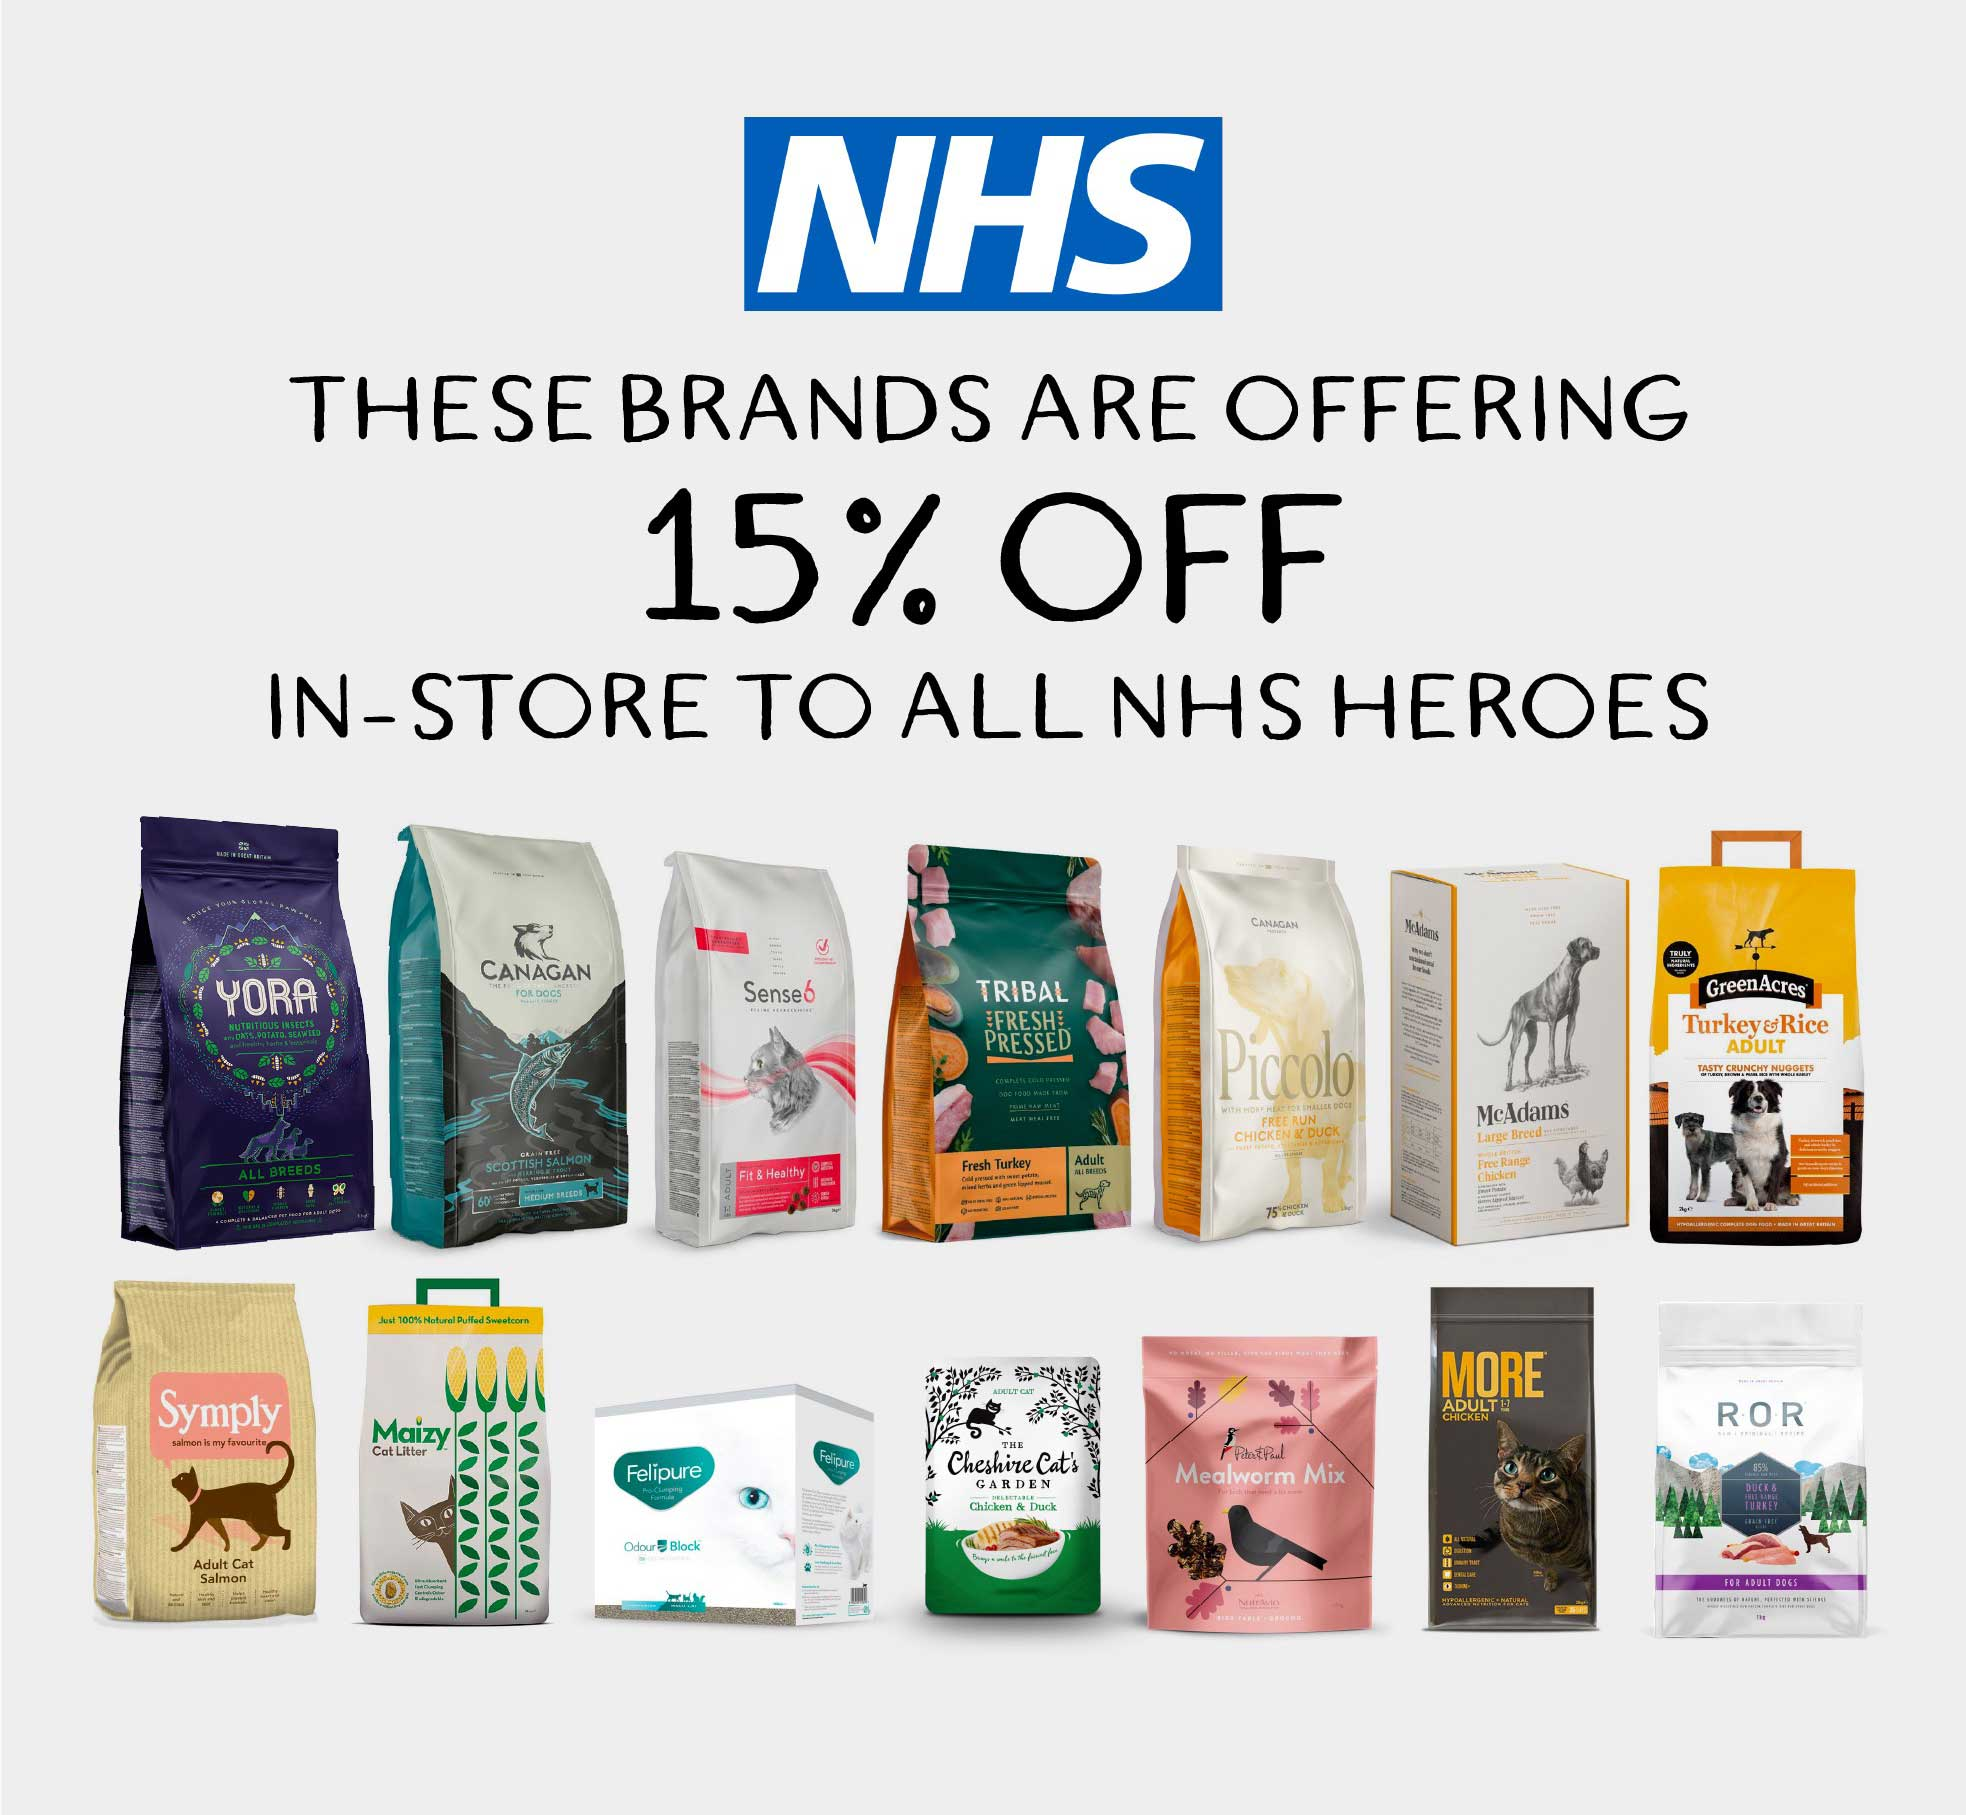 NHS 15% off brands